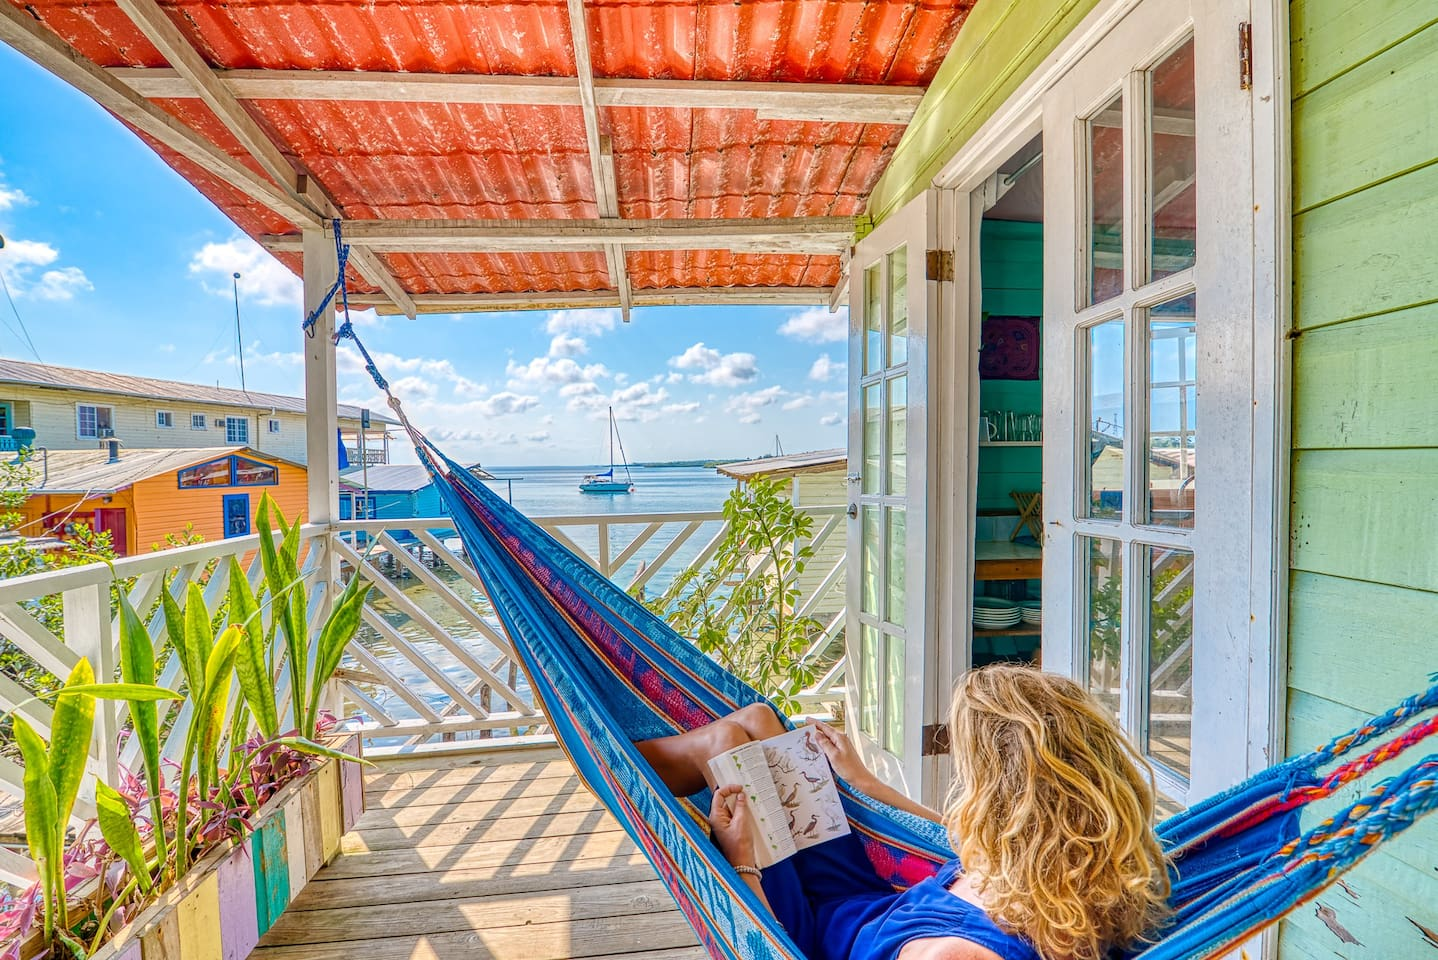 Artsy Caribbean wooden house on stilts over the water. Has everything  you need: close to town center,taxis, shuttles,laundry,groceries,beaches,local restaurants and is the place where the sunsets fall amazingly. This is an lgbt friendly home.